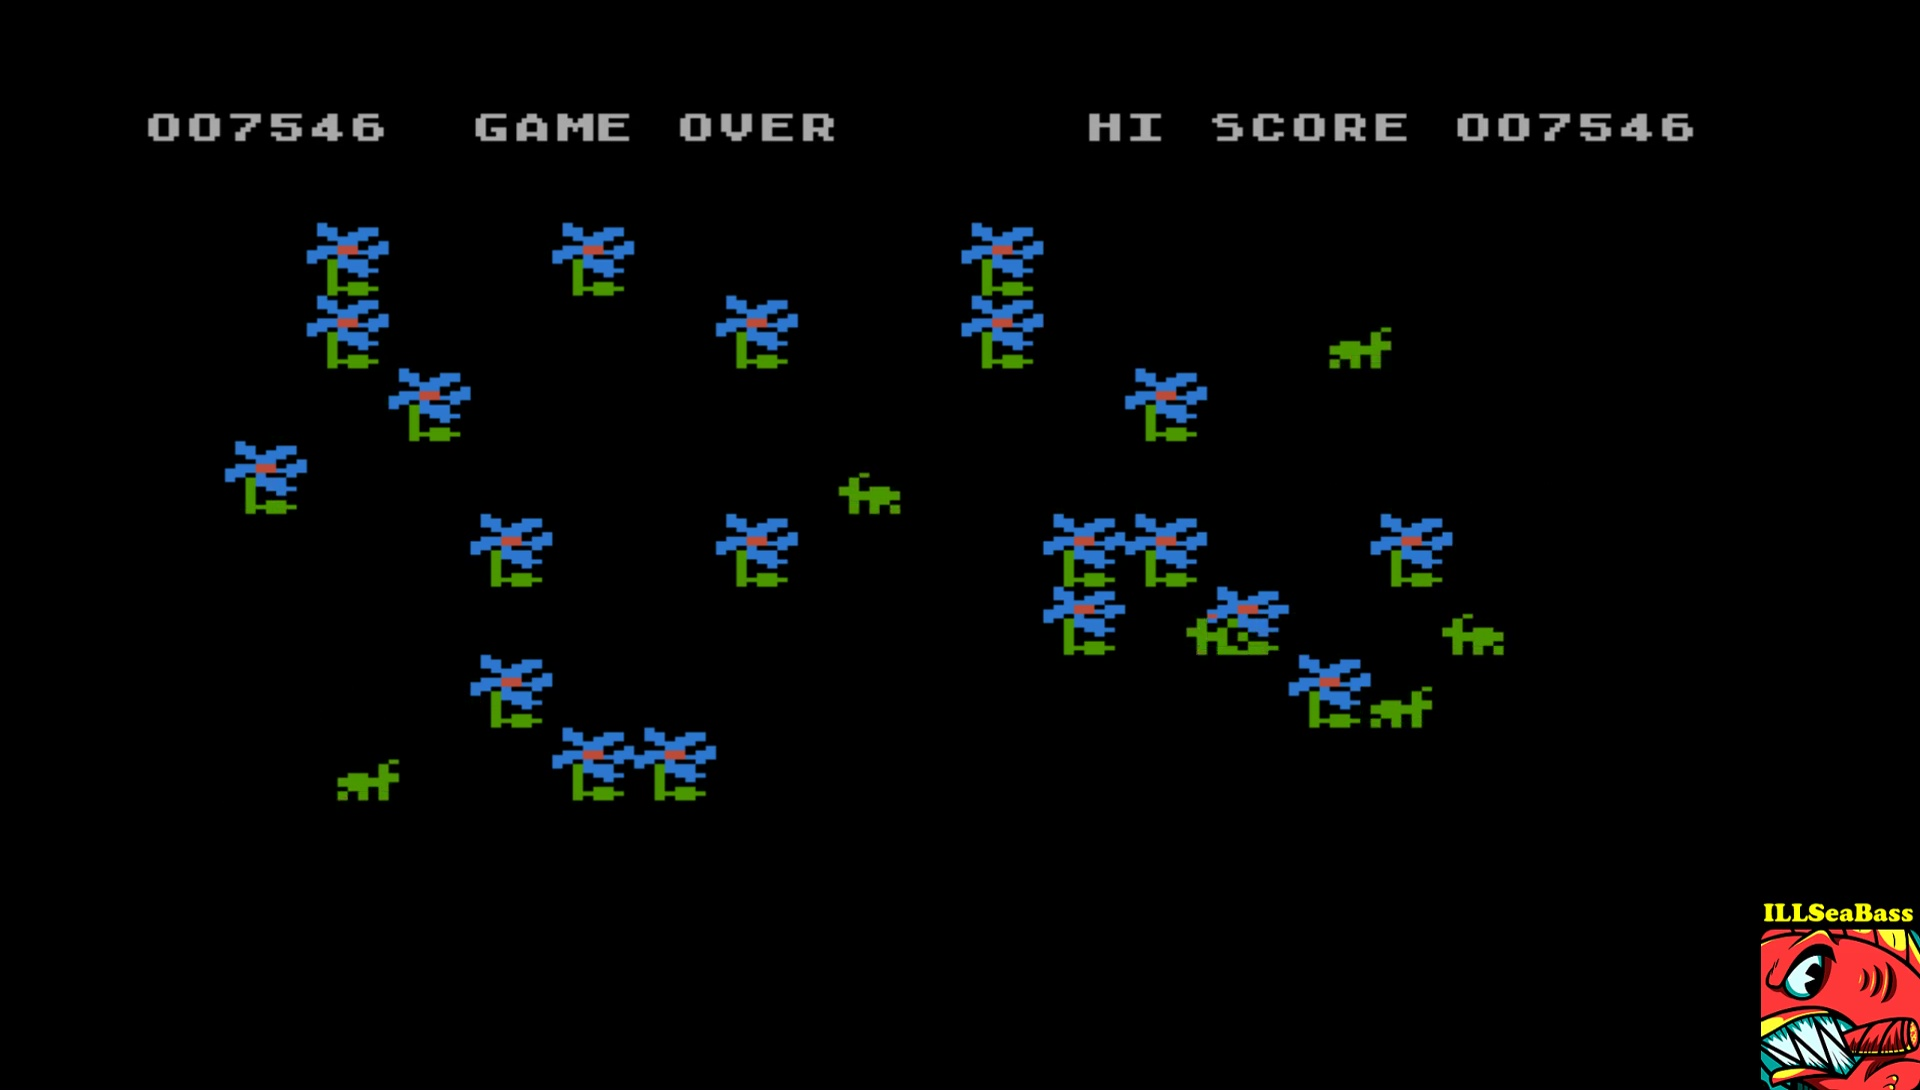 ILLSeaBass: Bug Attack (Atari 400/800/XL/XE Emulated) 7,546 points on 2017-05-16 23:36:05